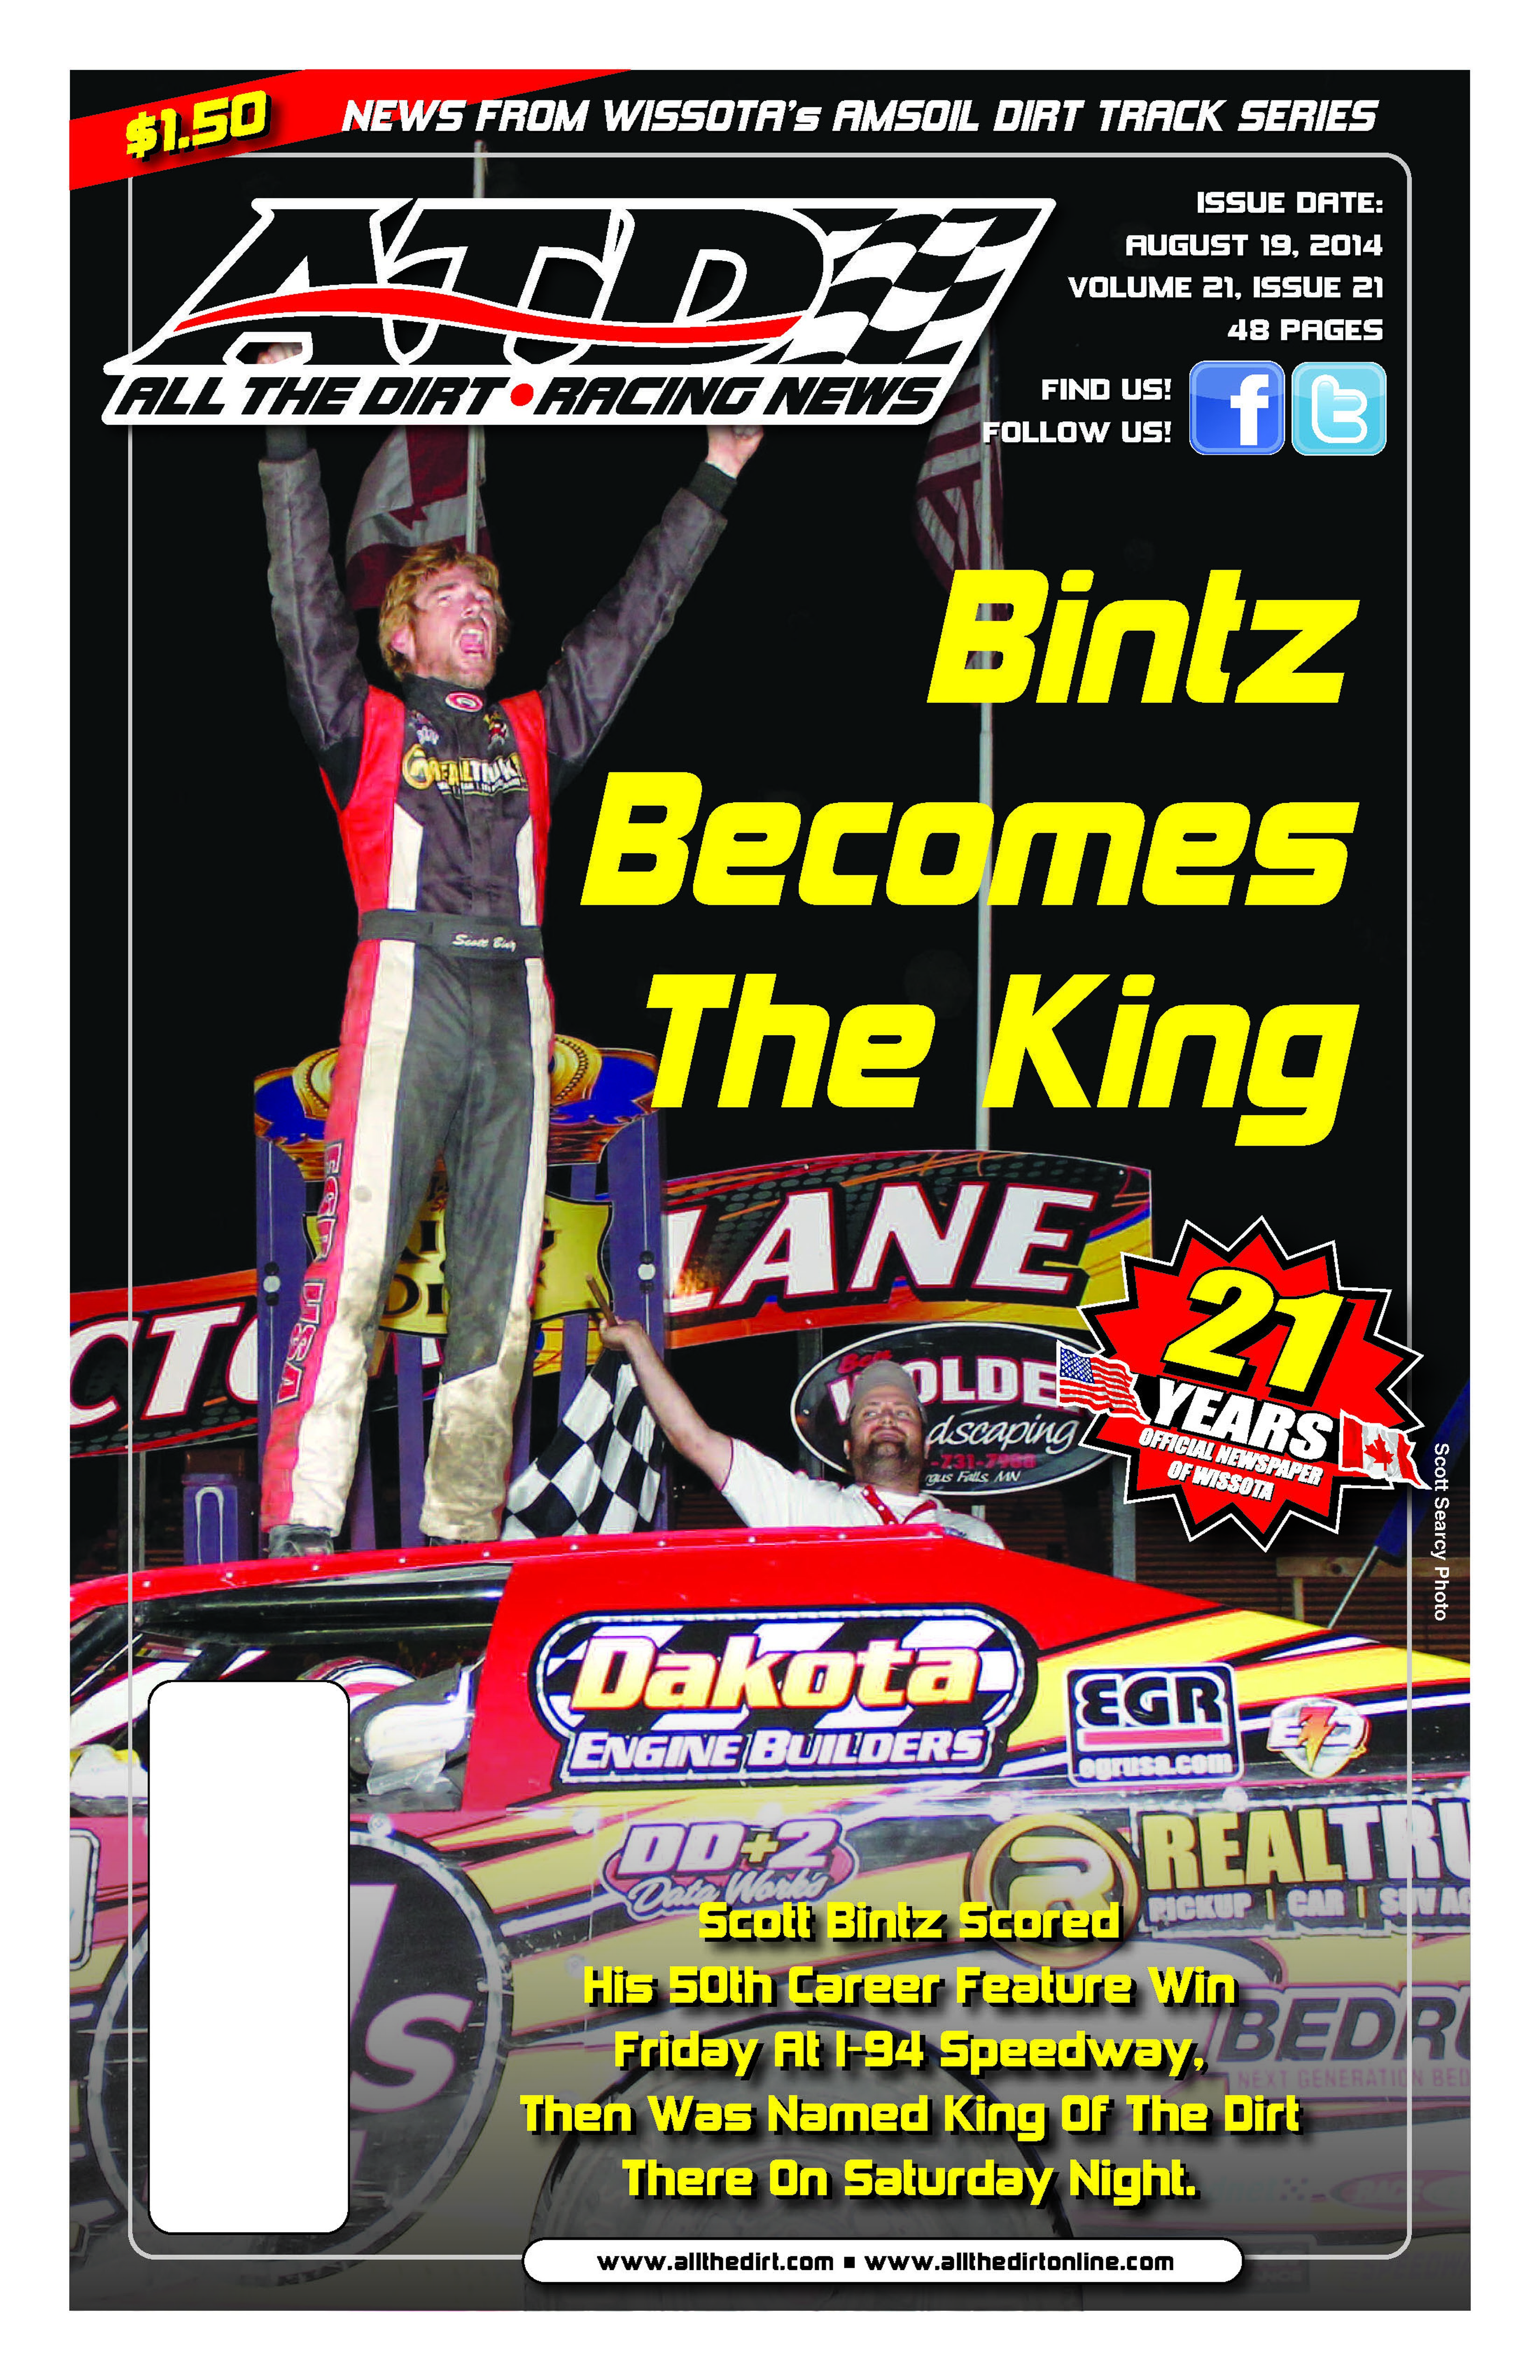 King of the Dirt - Scott Bintz